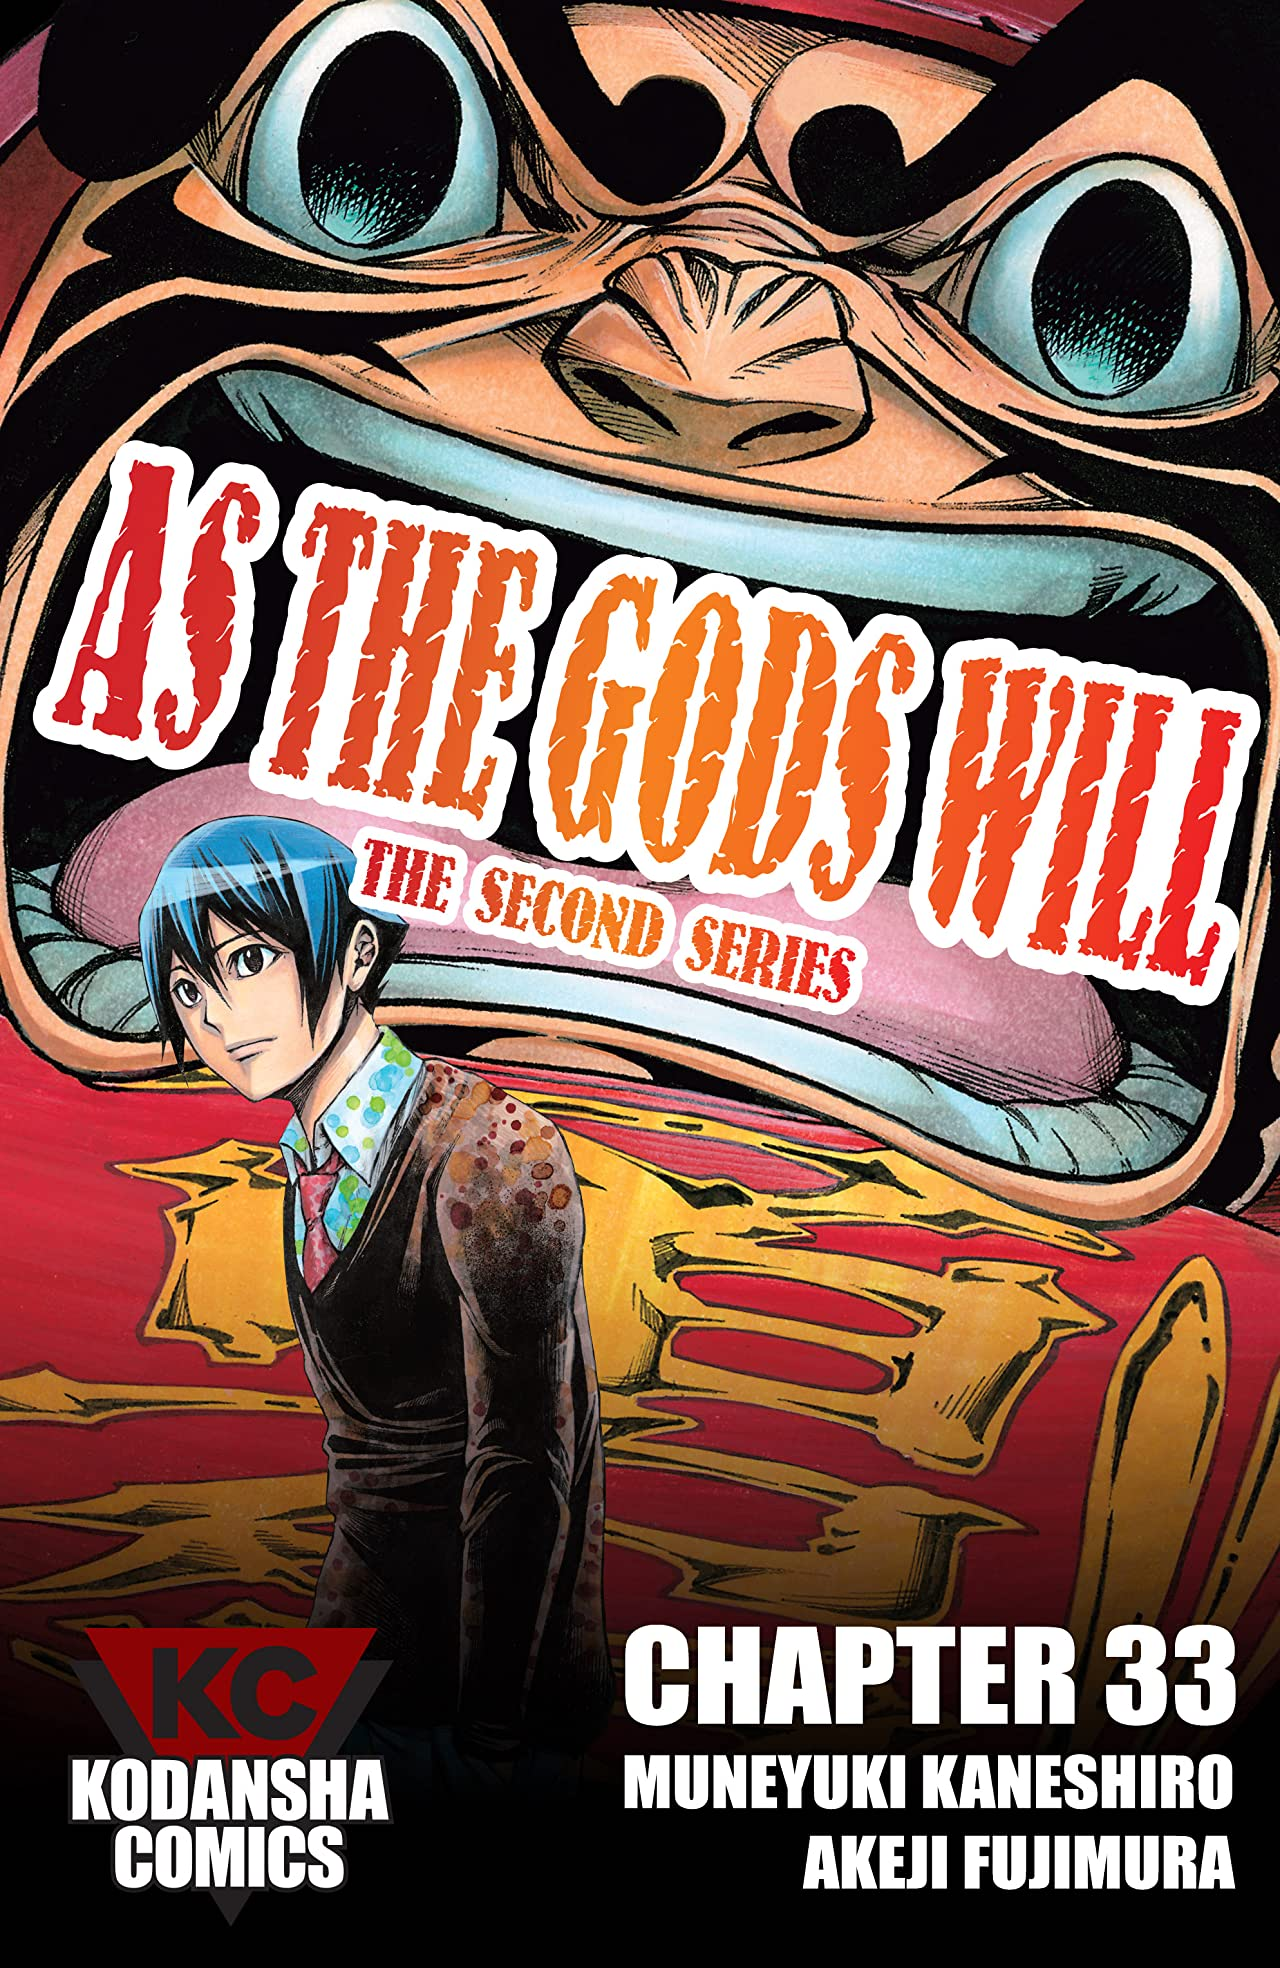 As The Gods Will: The Second Series #33